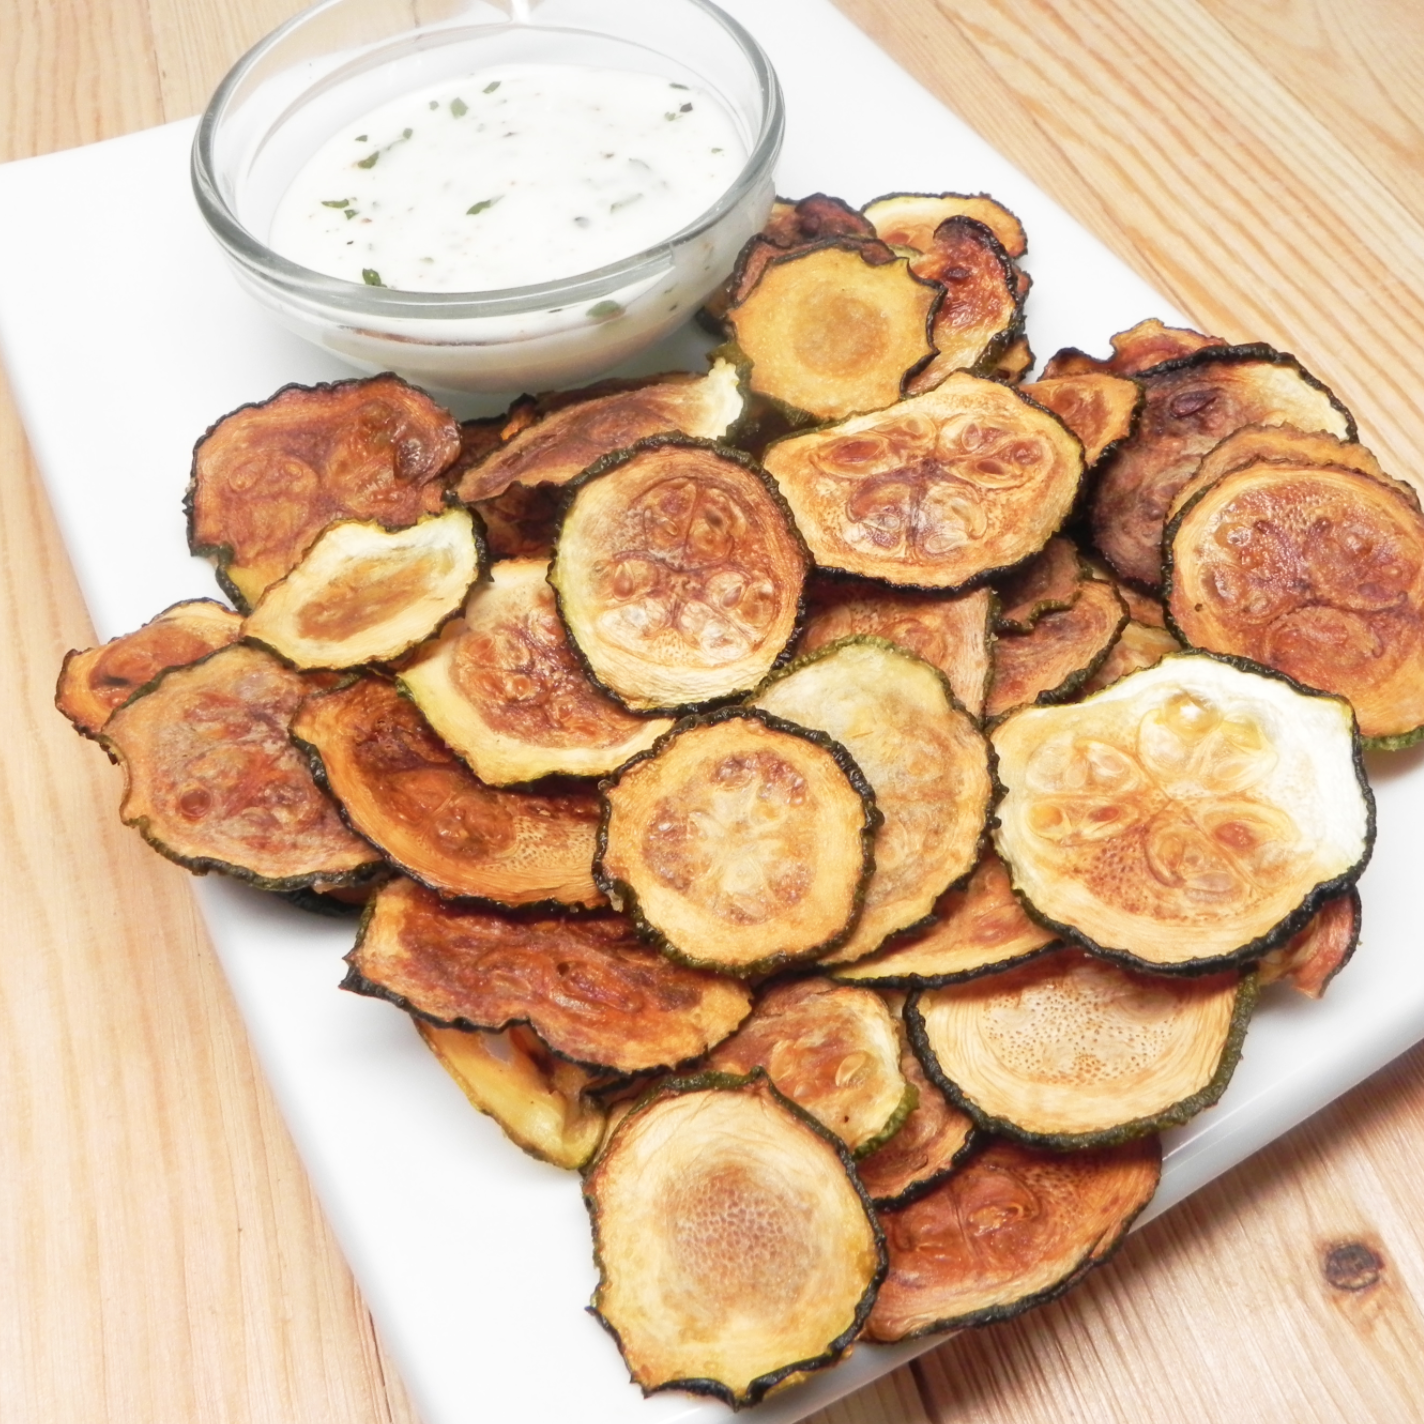 Low-Carb Zucchini Chips next to creamy dip nex